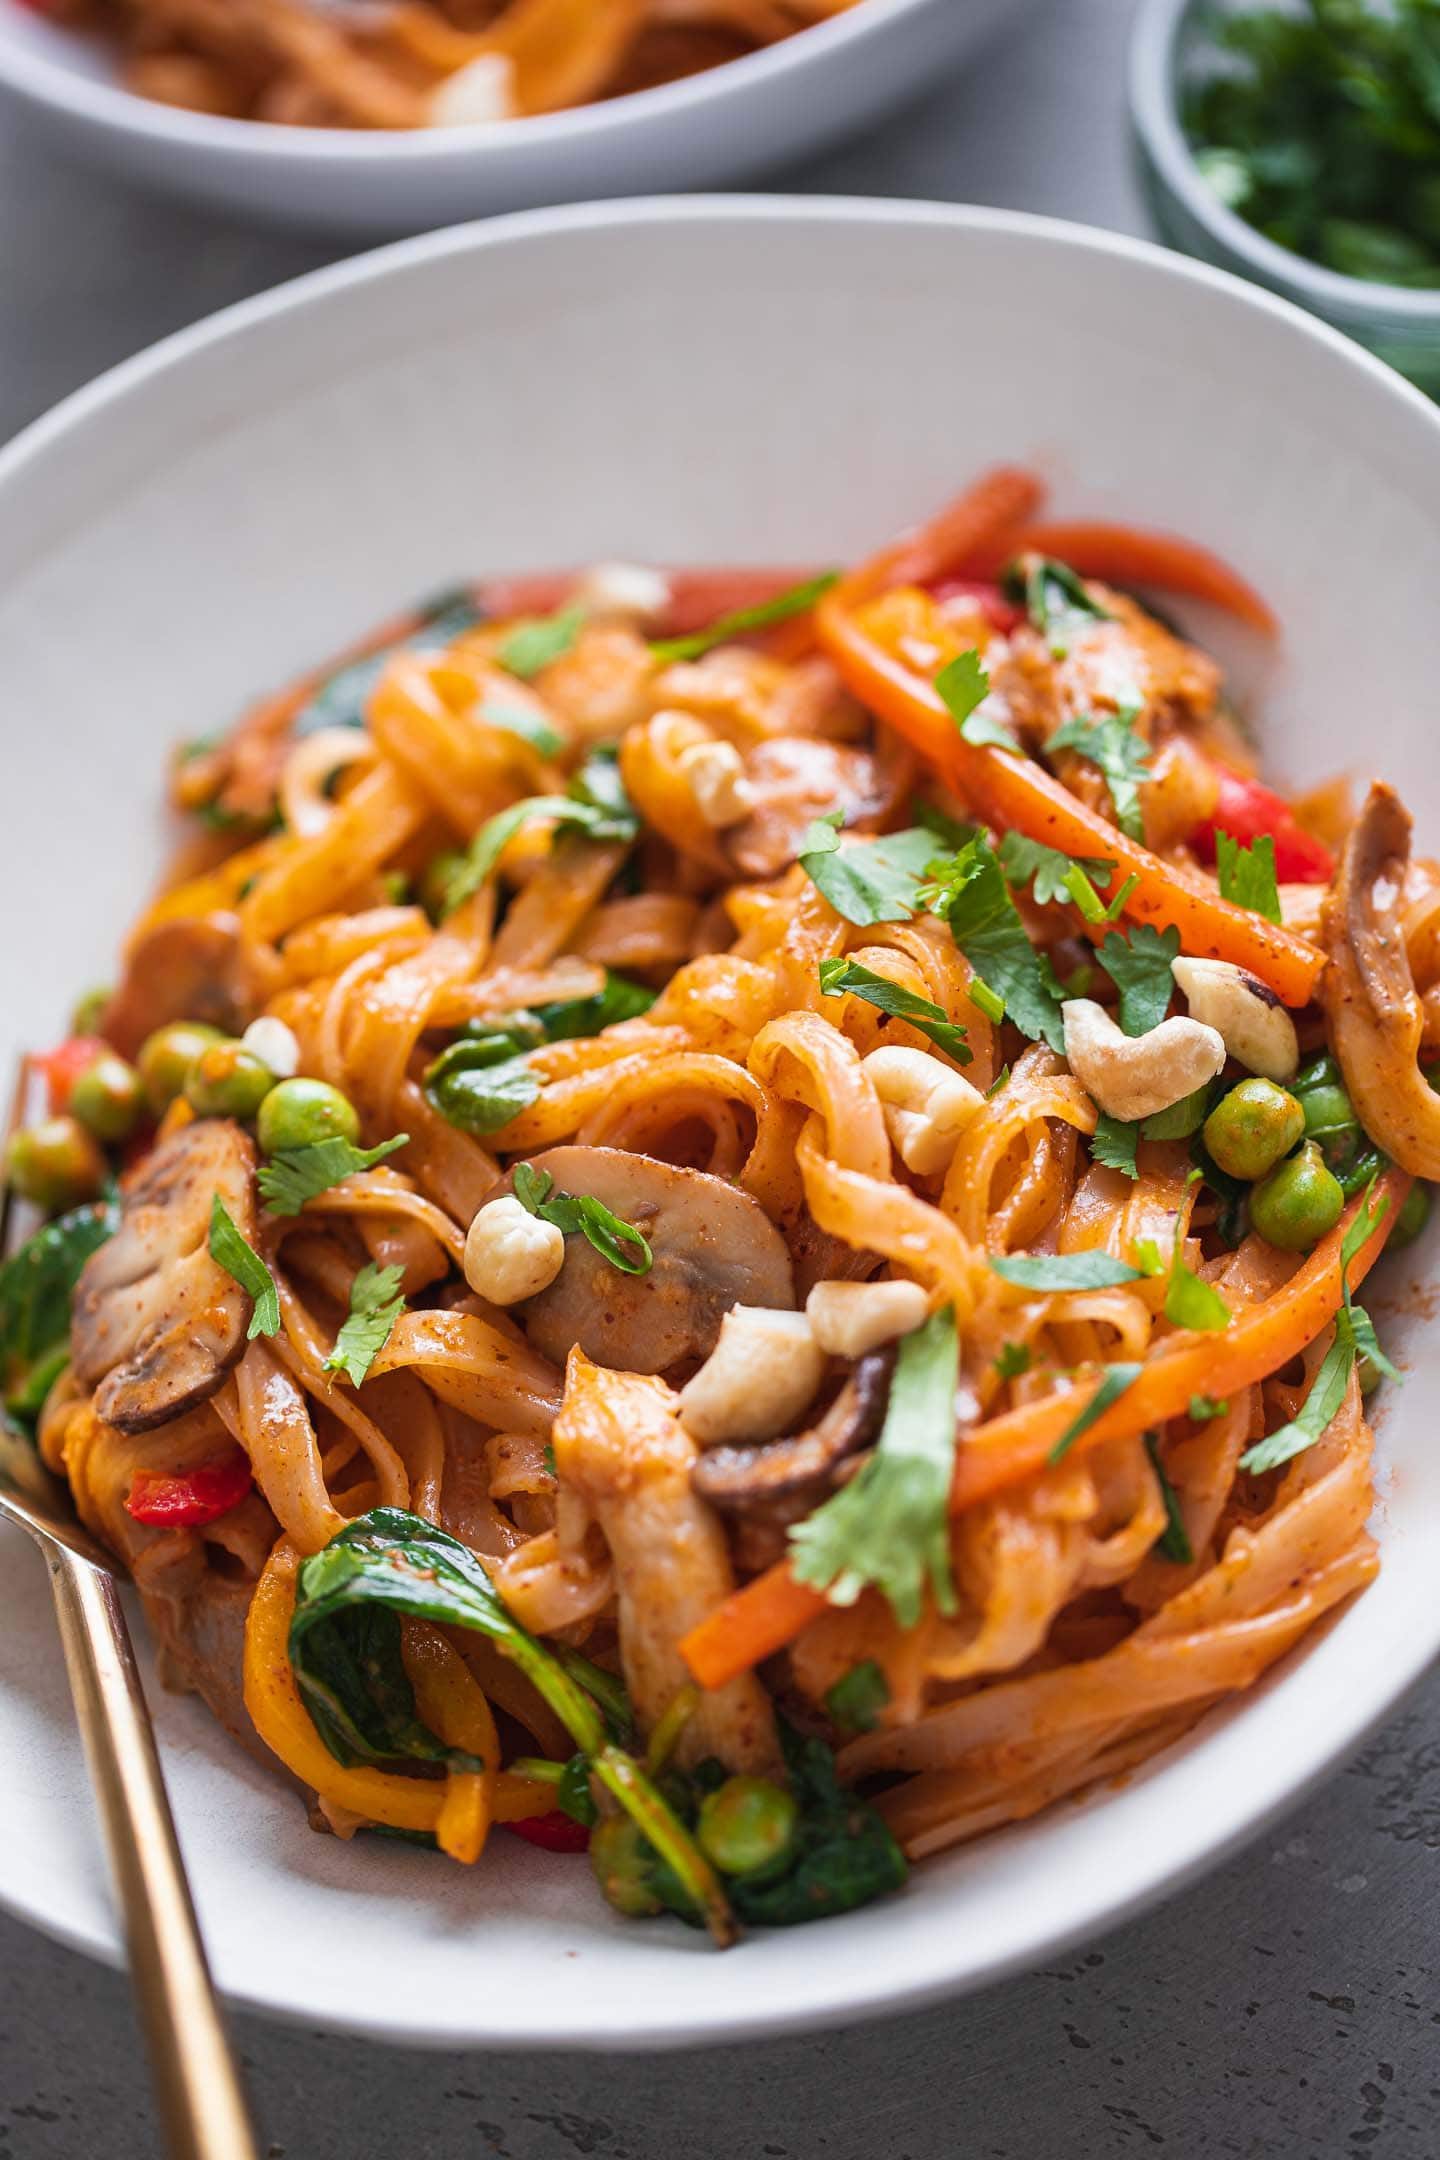 Coconut vegetable stir-fry with rice noodles